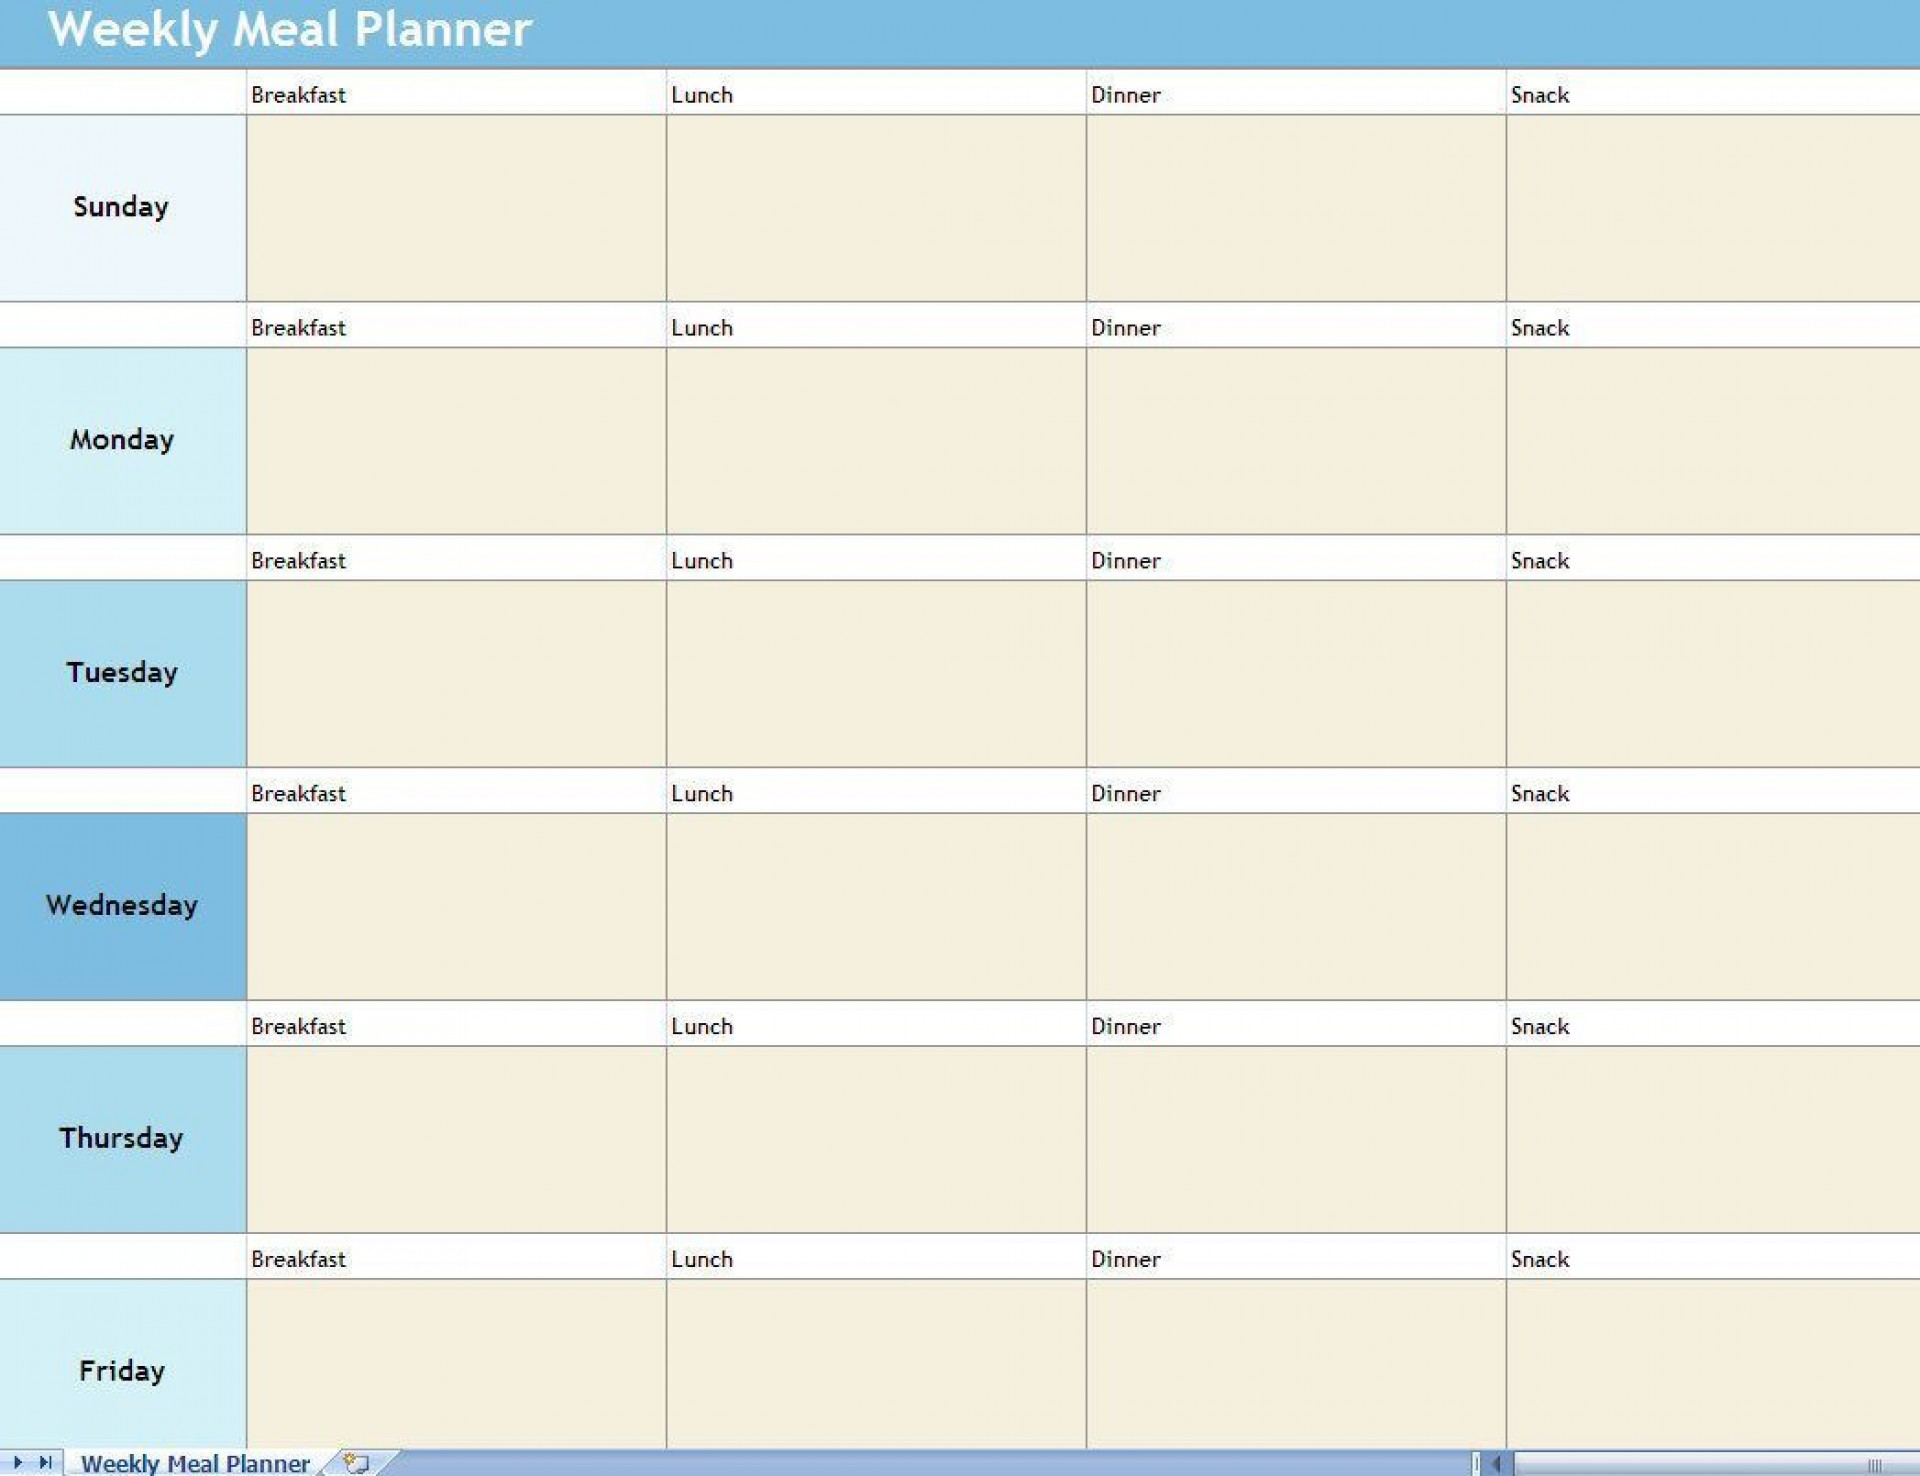 000 Top Weekly Meal Planner Template Excel High Resolution  Downloadable Plan Editable1920